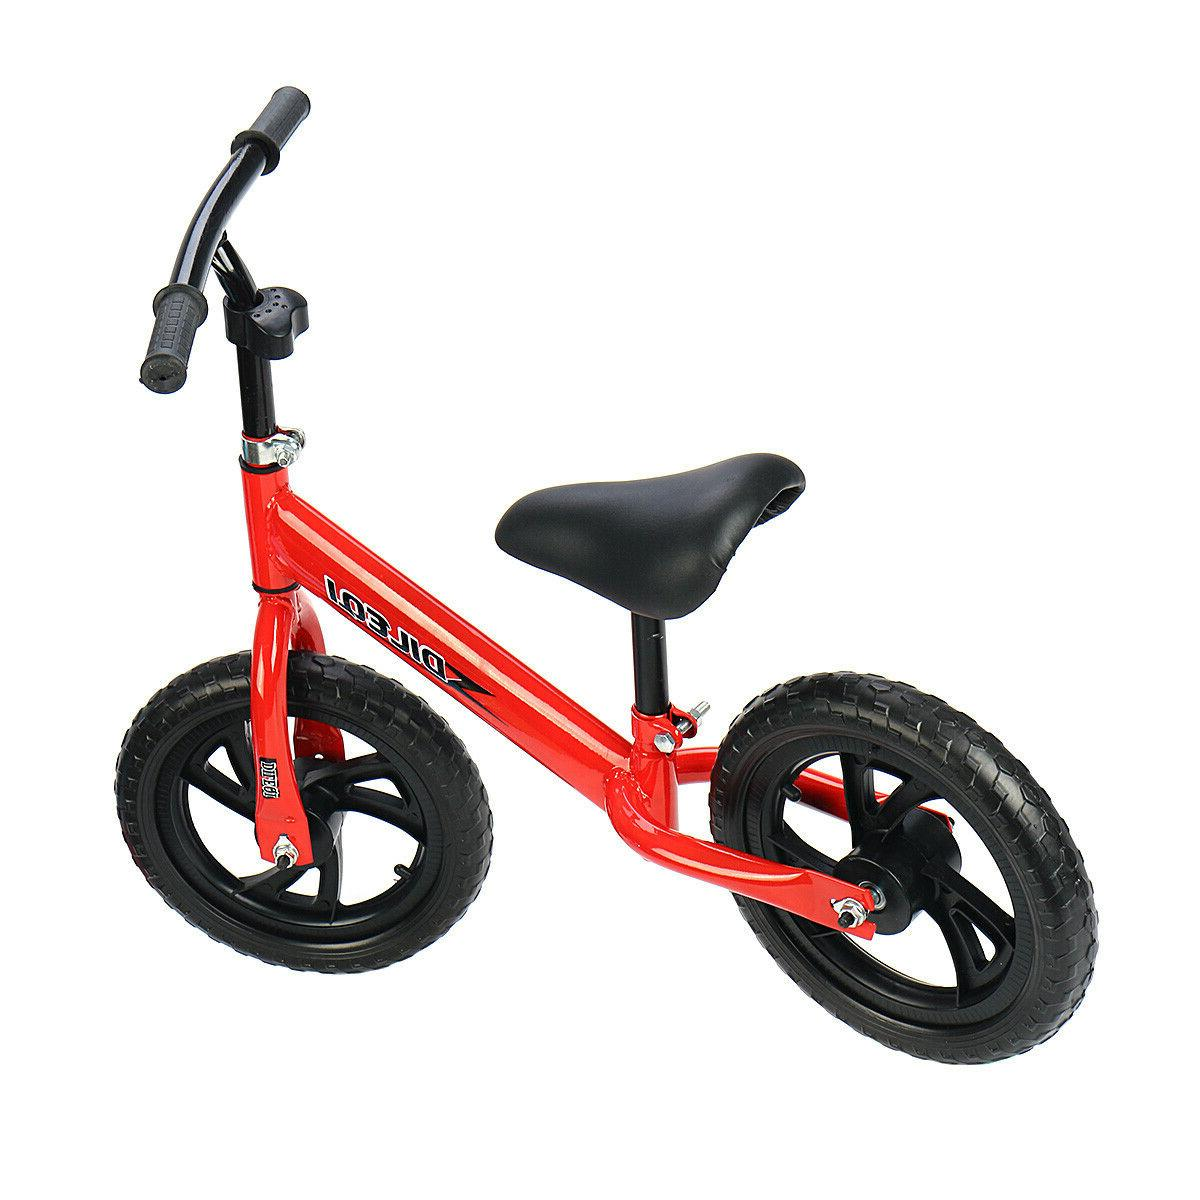 Kids Balance Walker No Pedal Childs Training Bicycle Toy Adjustable Seat